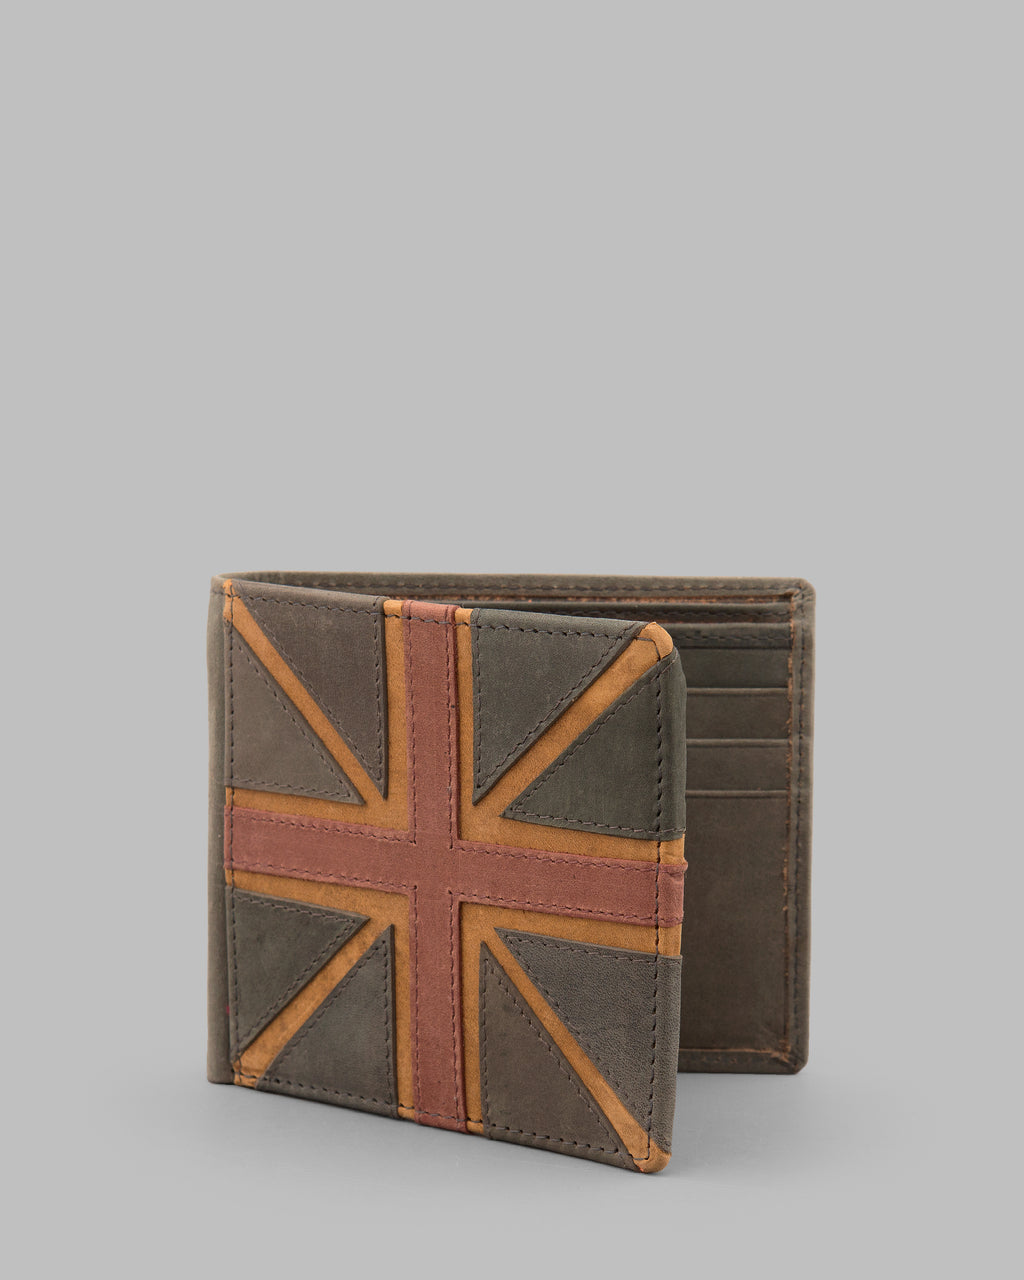 Navy Leather Union Jack Wallet by Tumble and Hide a